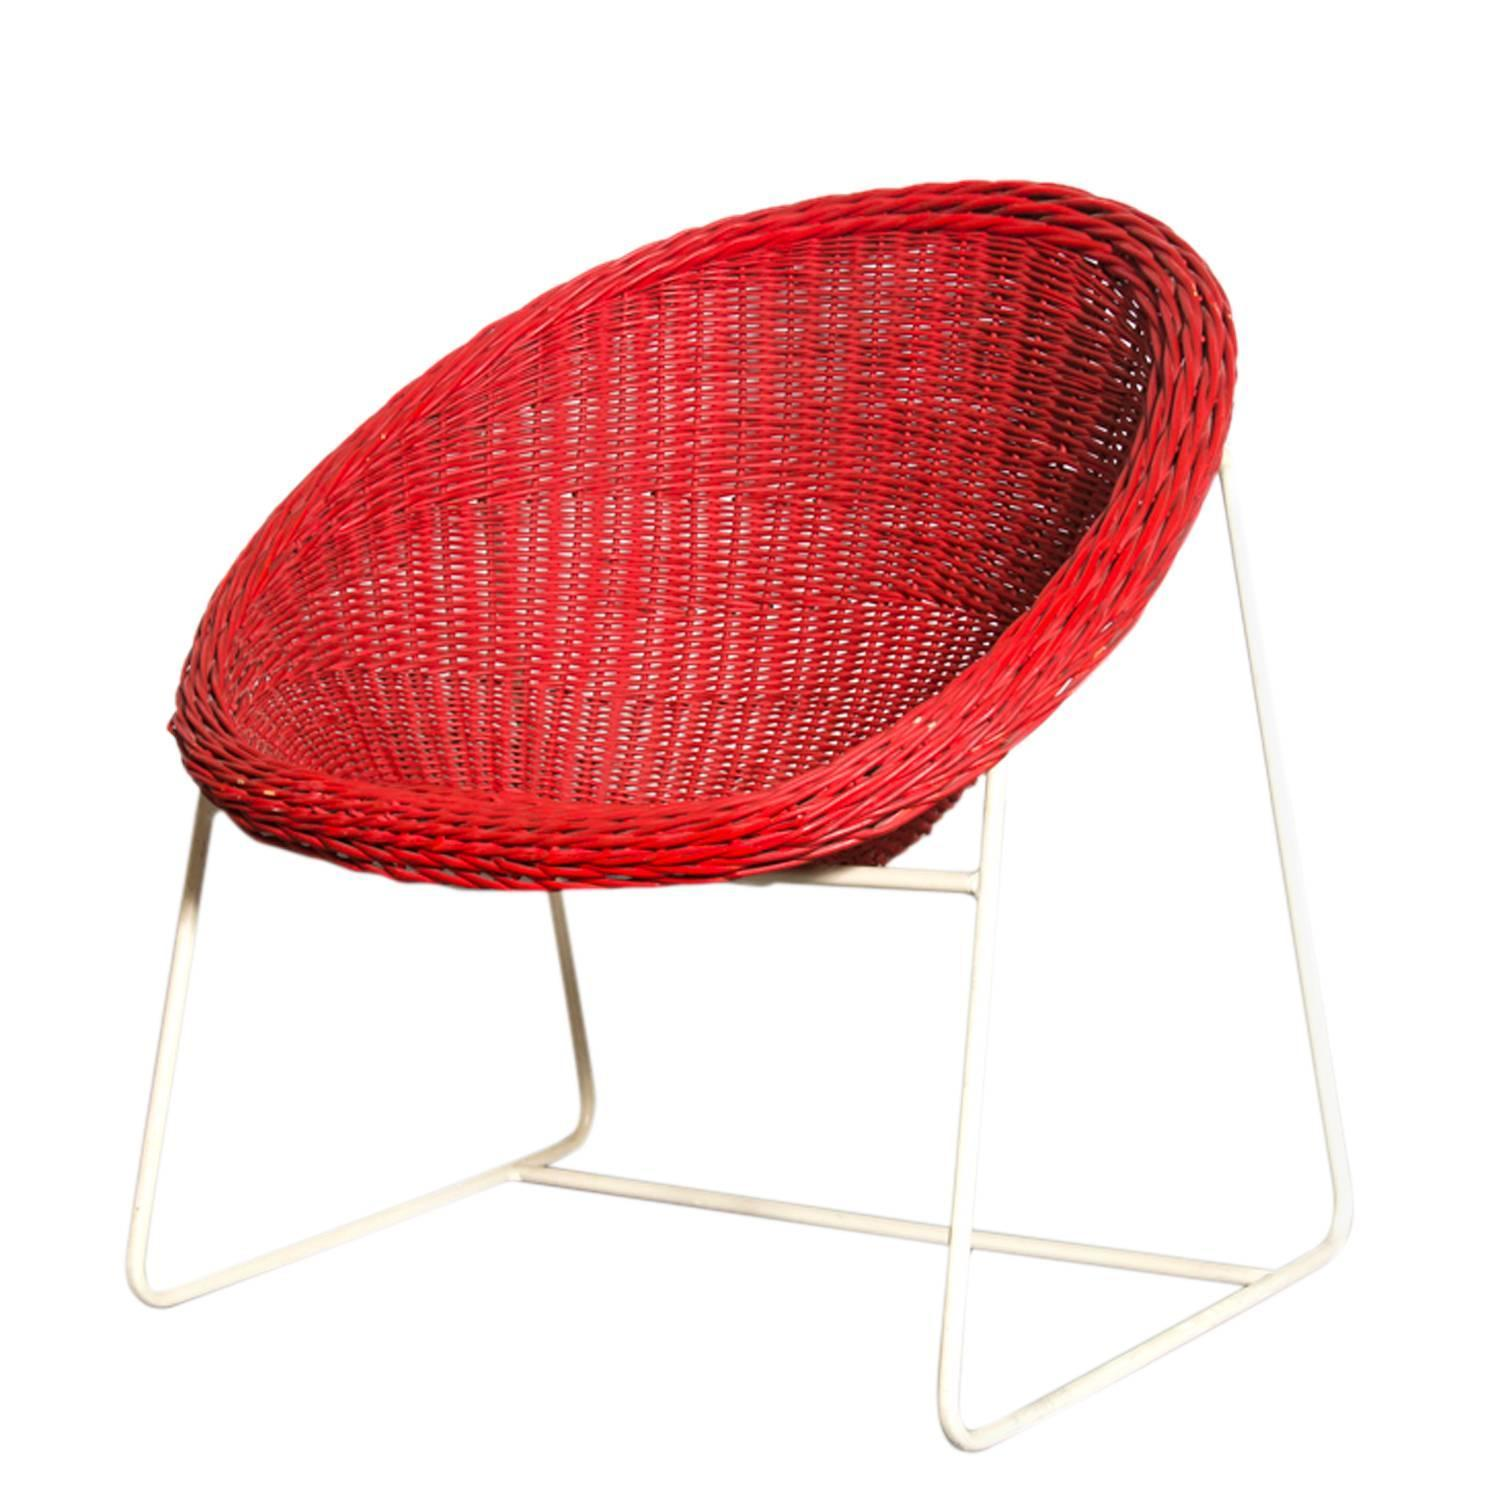 Exceptionnel Jacques Adnet Inspired Red Woven Rattan And Wire Hoop Chair For Sale At  1stdibs